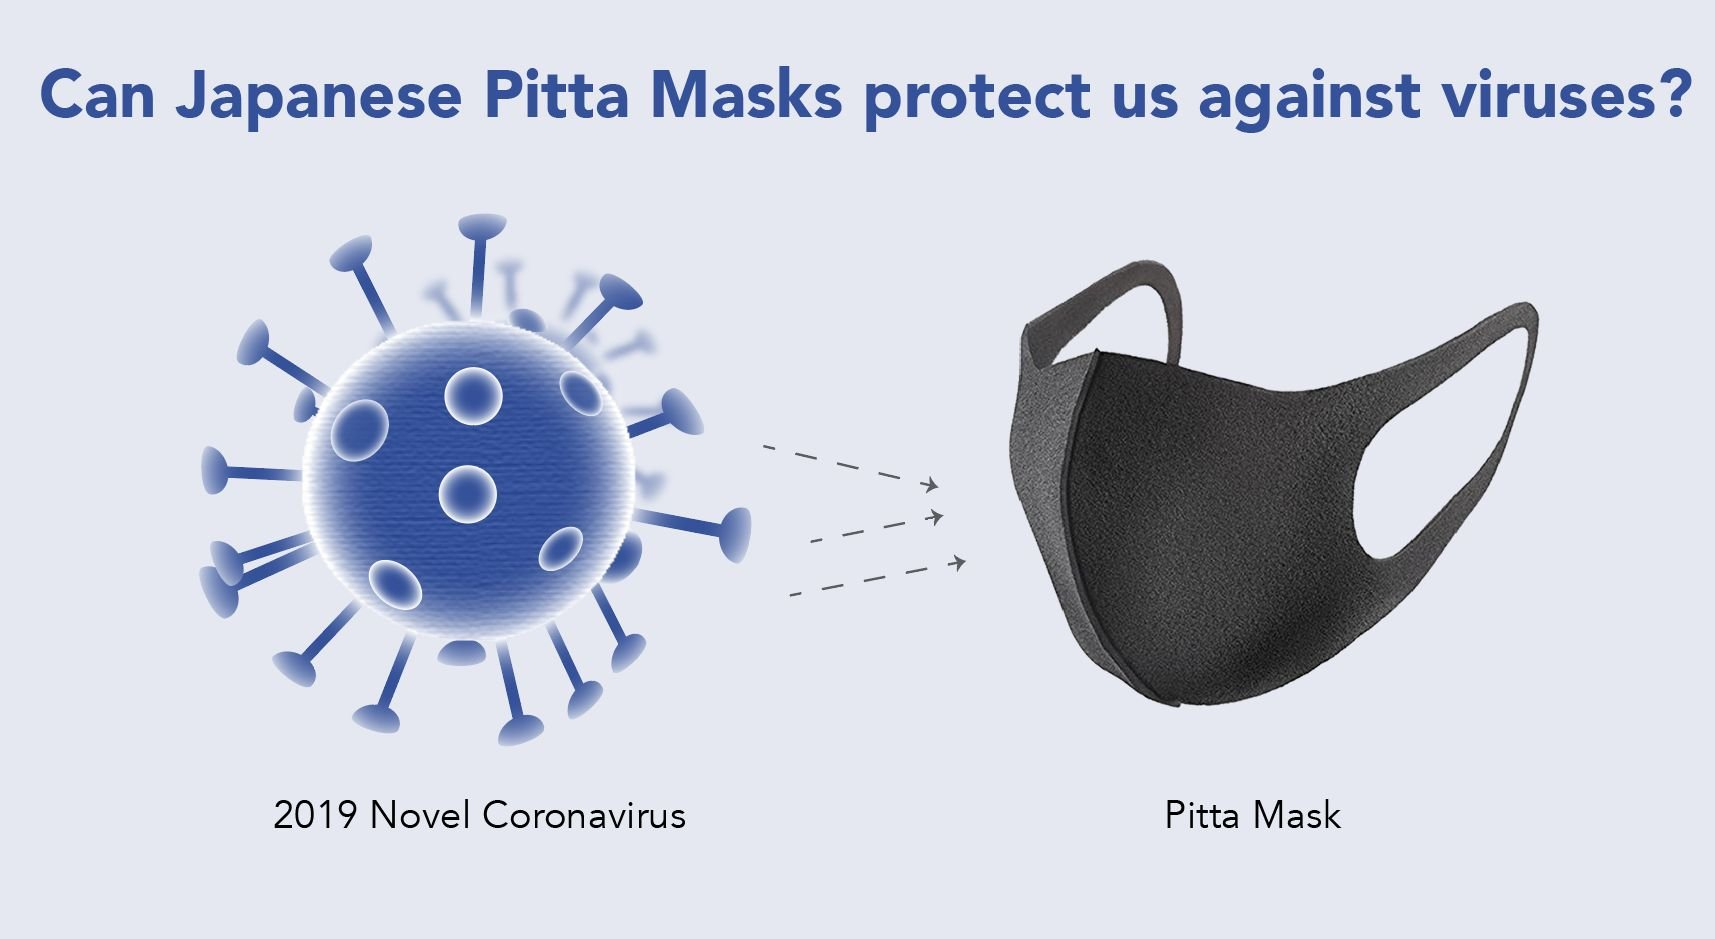 pitta masks protect us from coronavirus